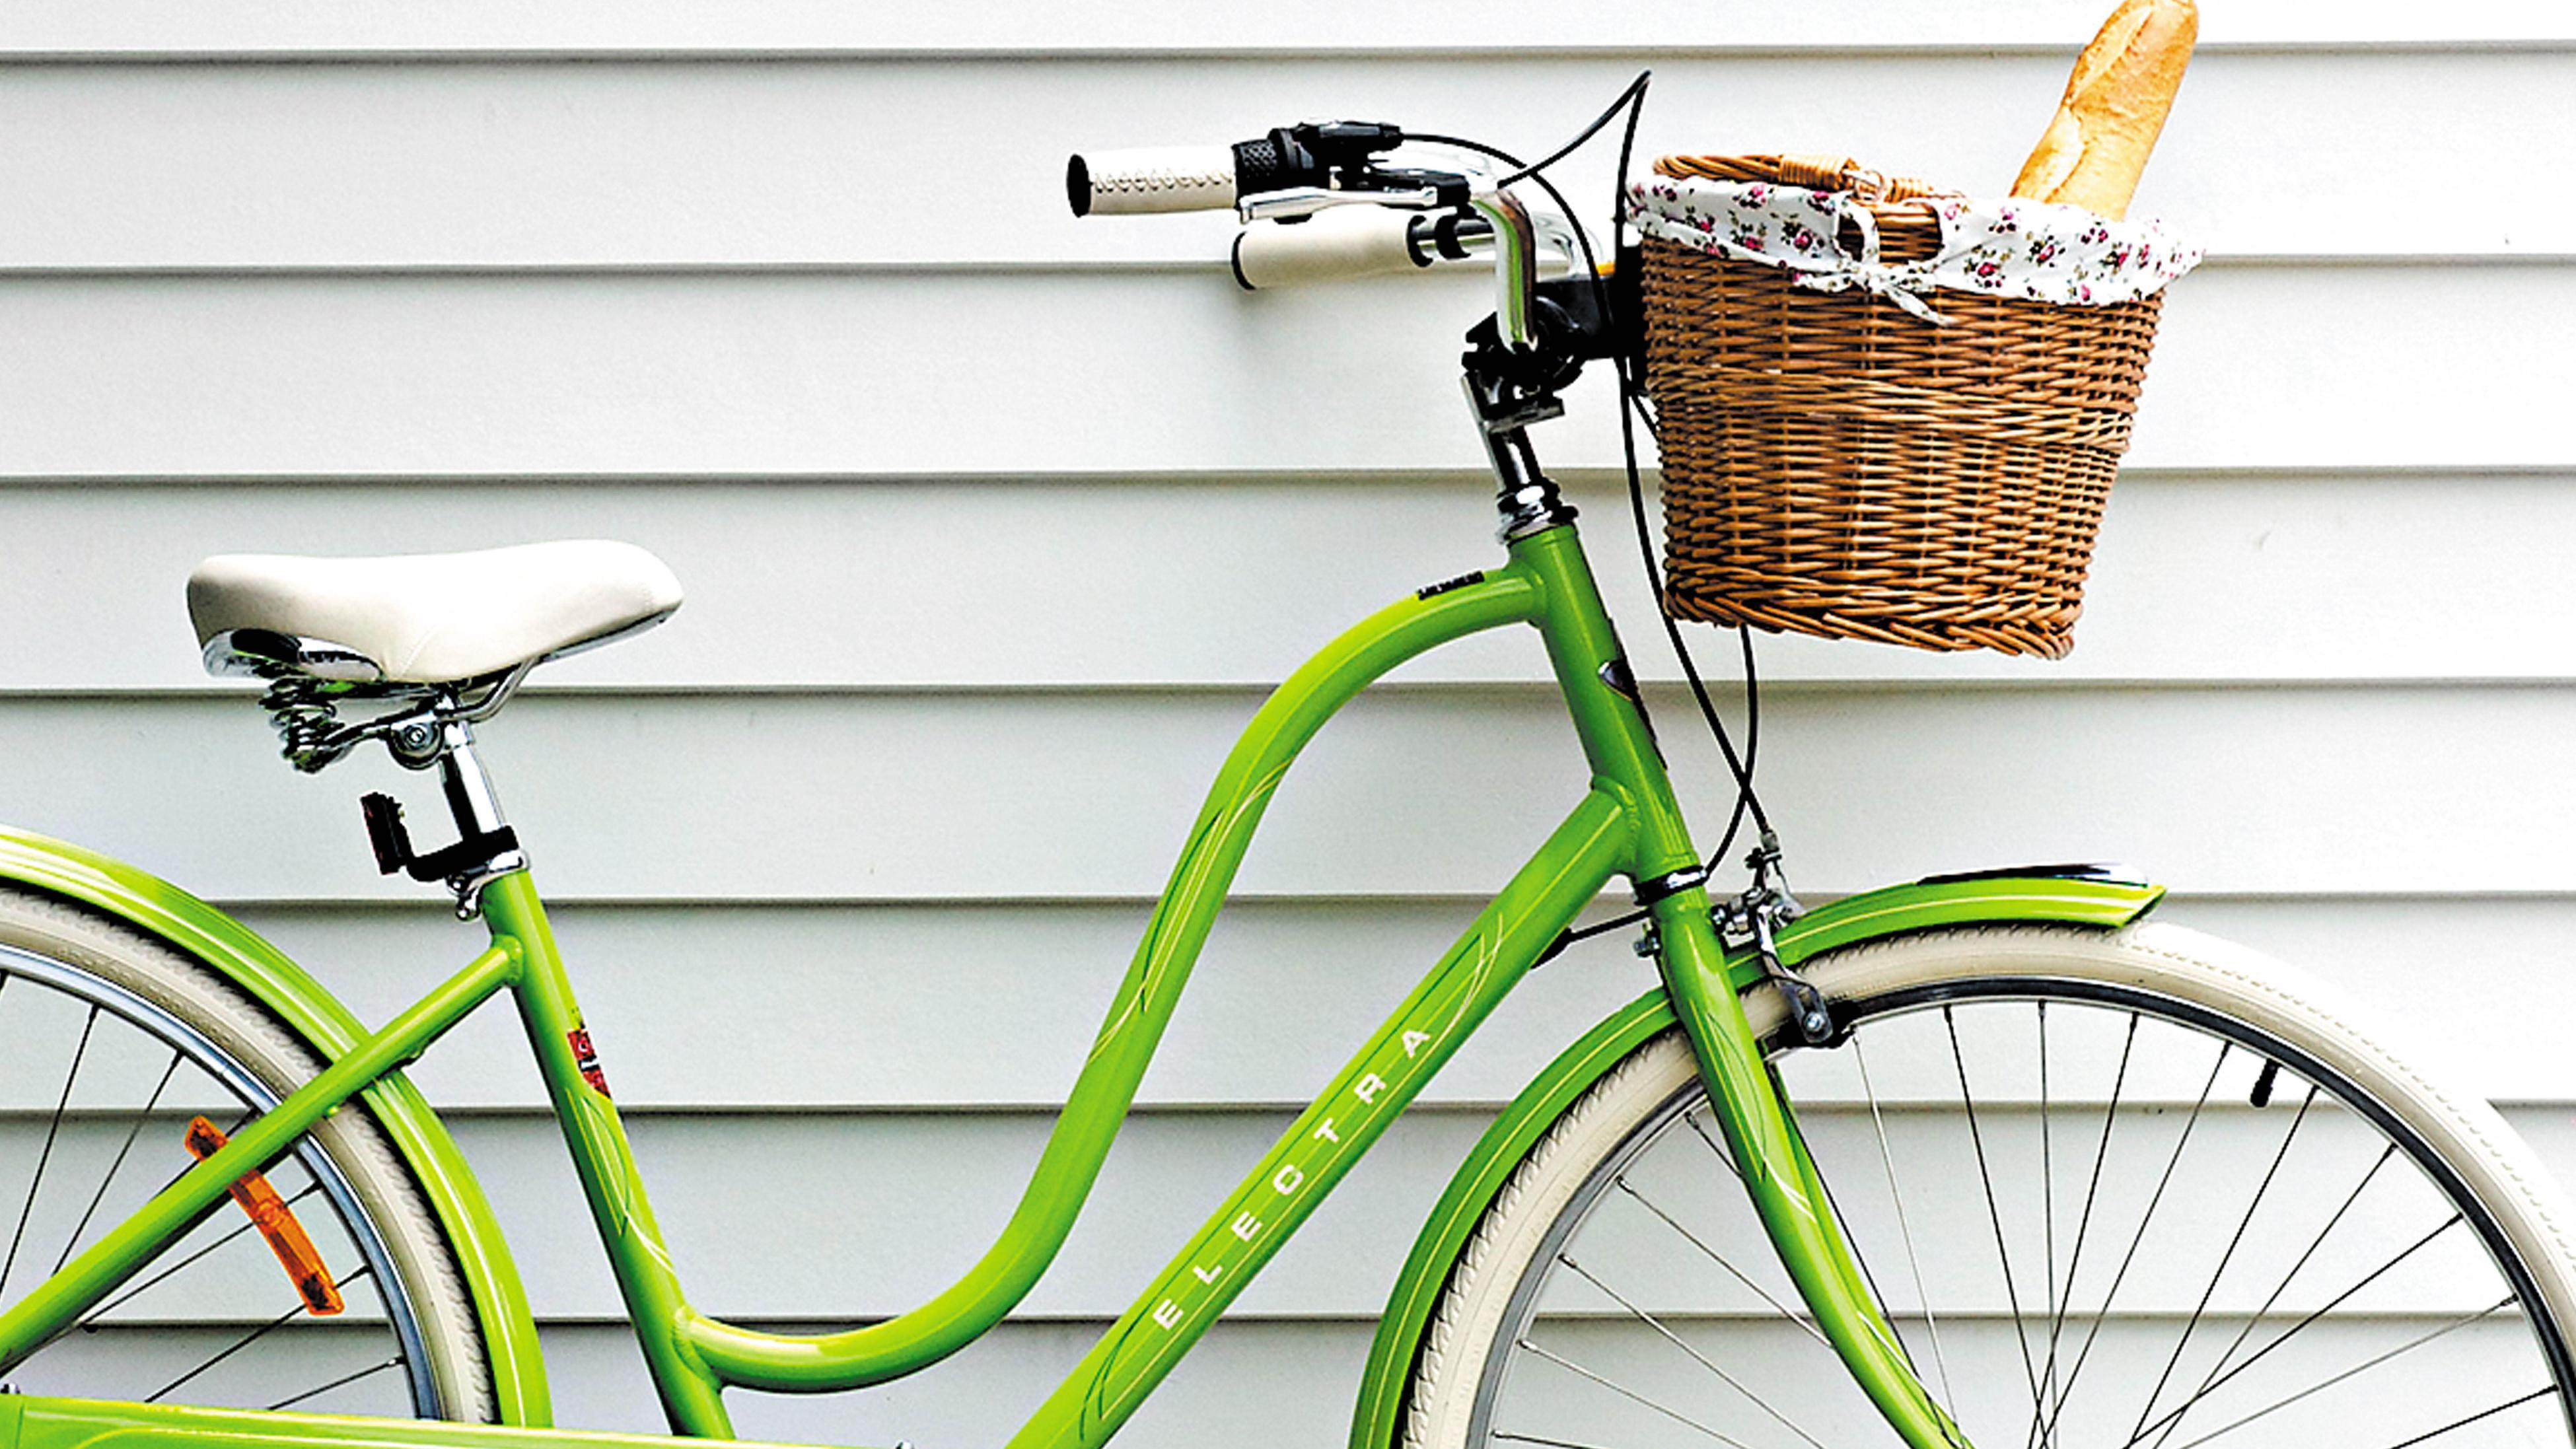 A green bike leaning up against a white weatherboard house.